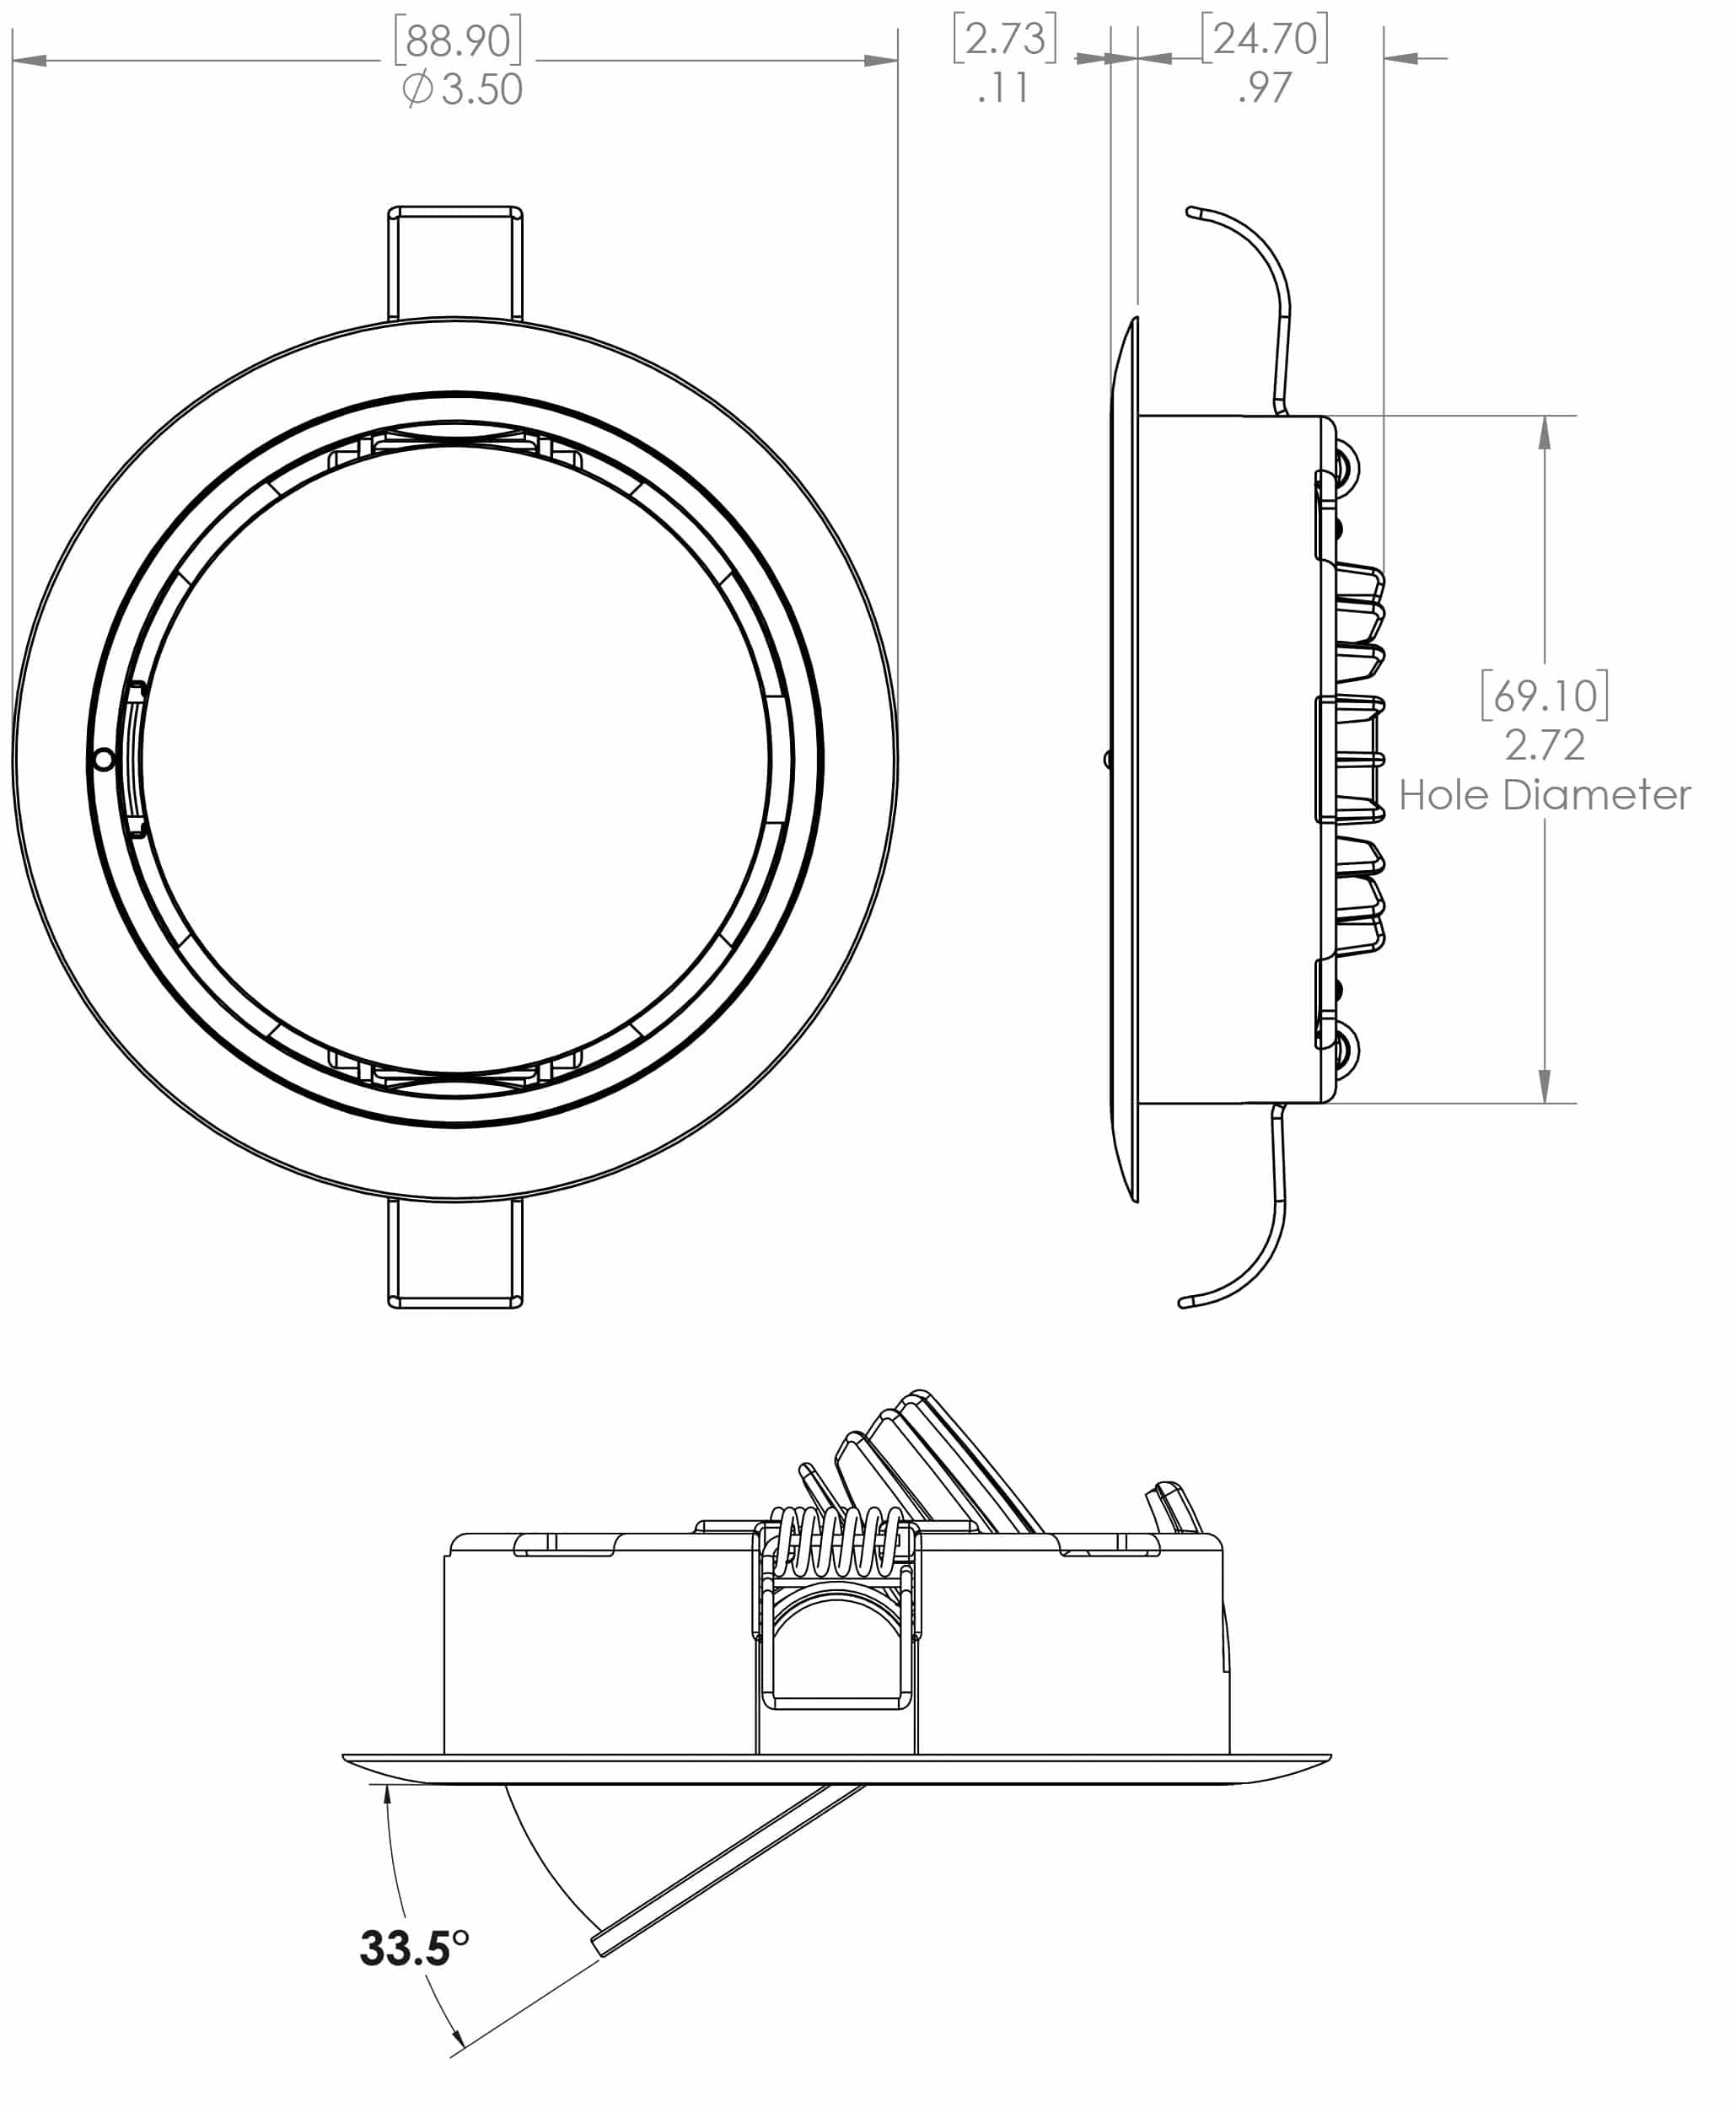 Light Fittings Surface Mount And Recessed Leds Unlimited Fitting Wiring Diagram Nz Positionable Mirage Dimensions